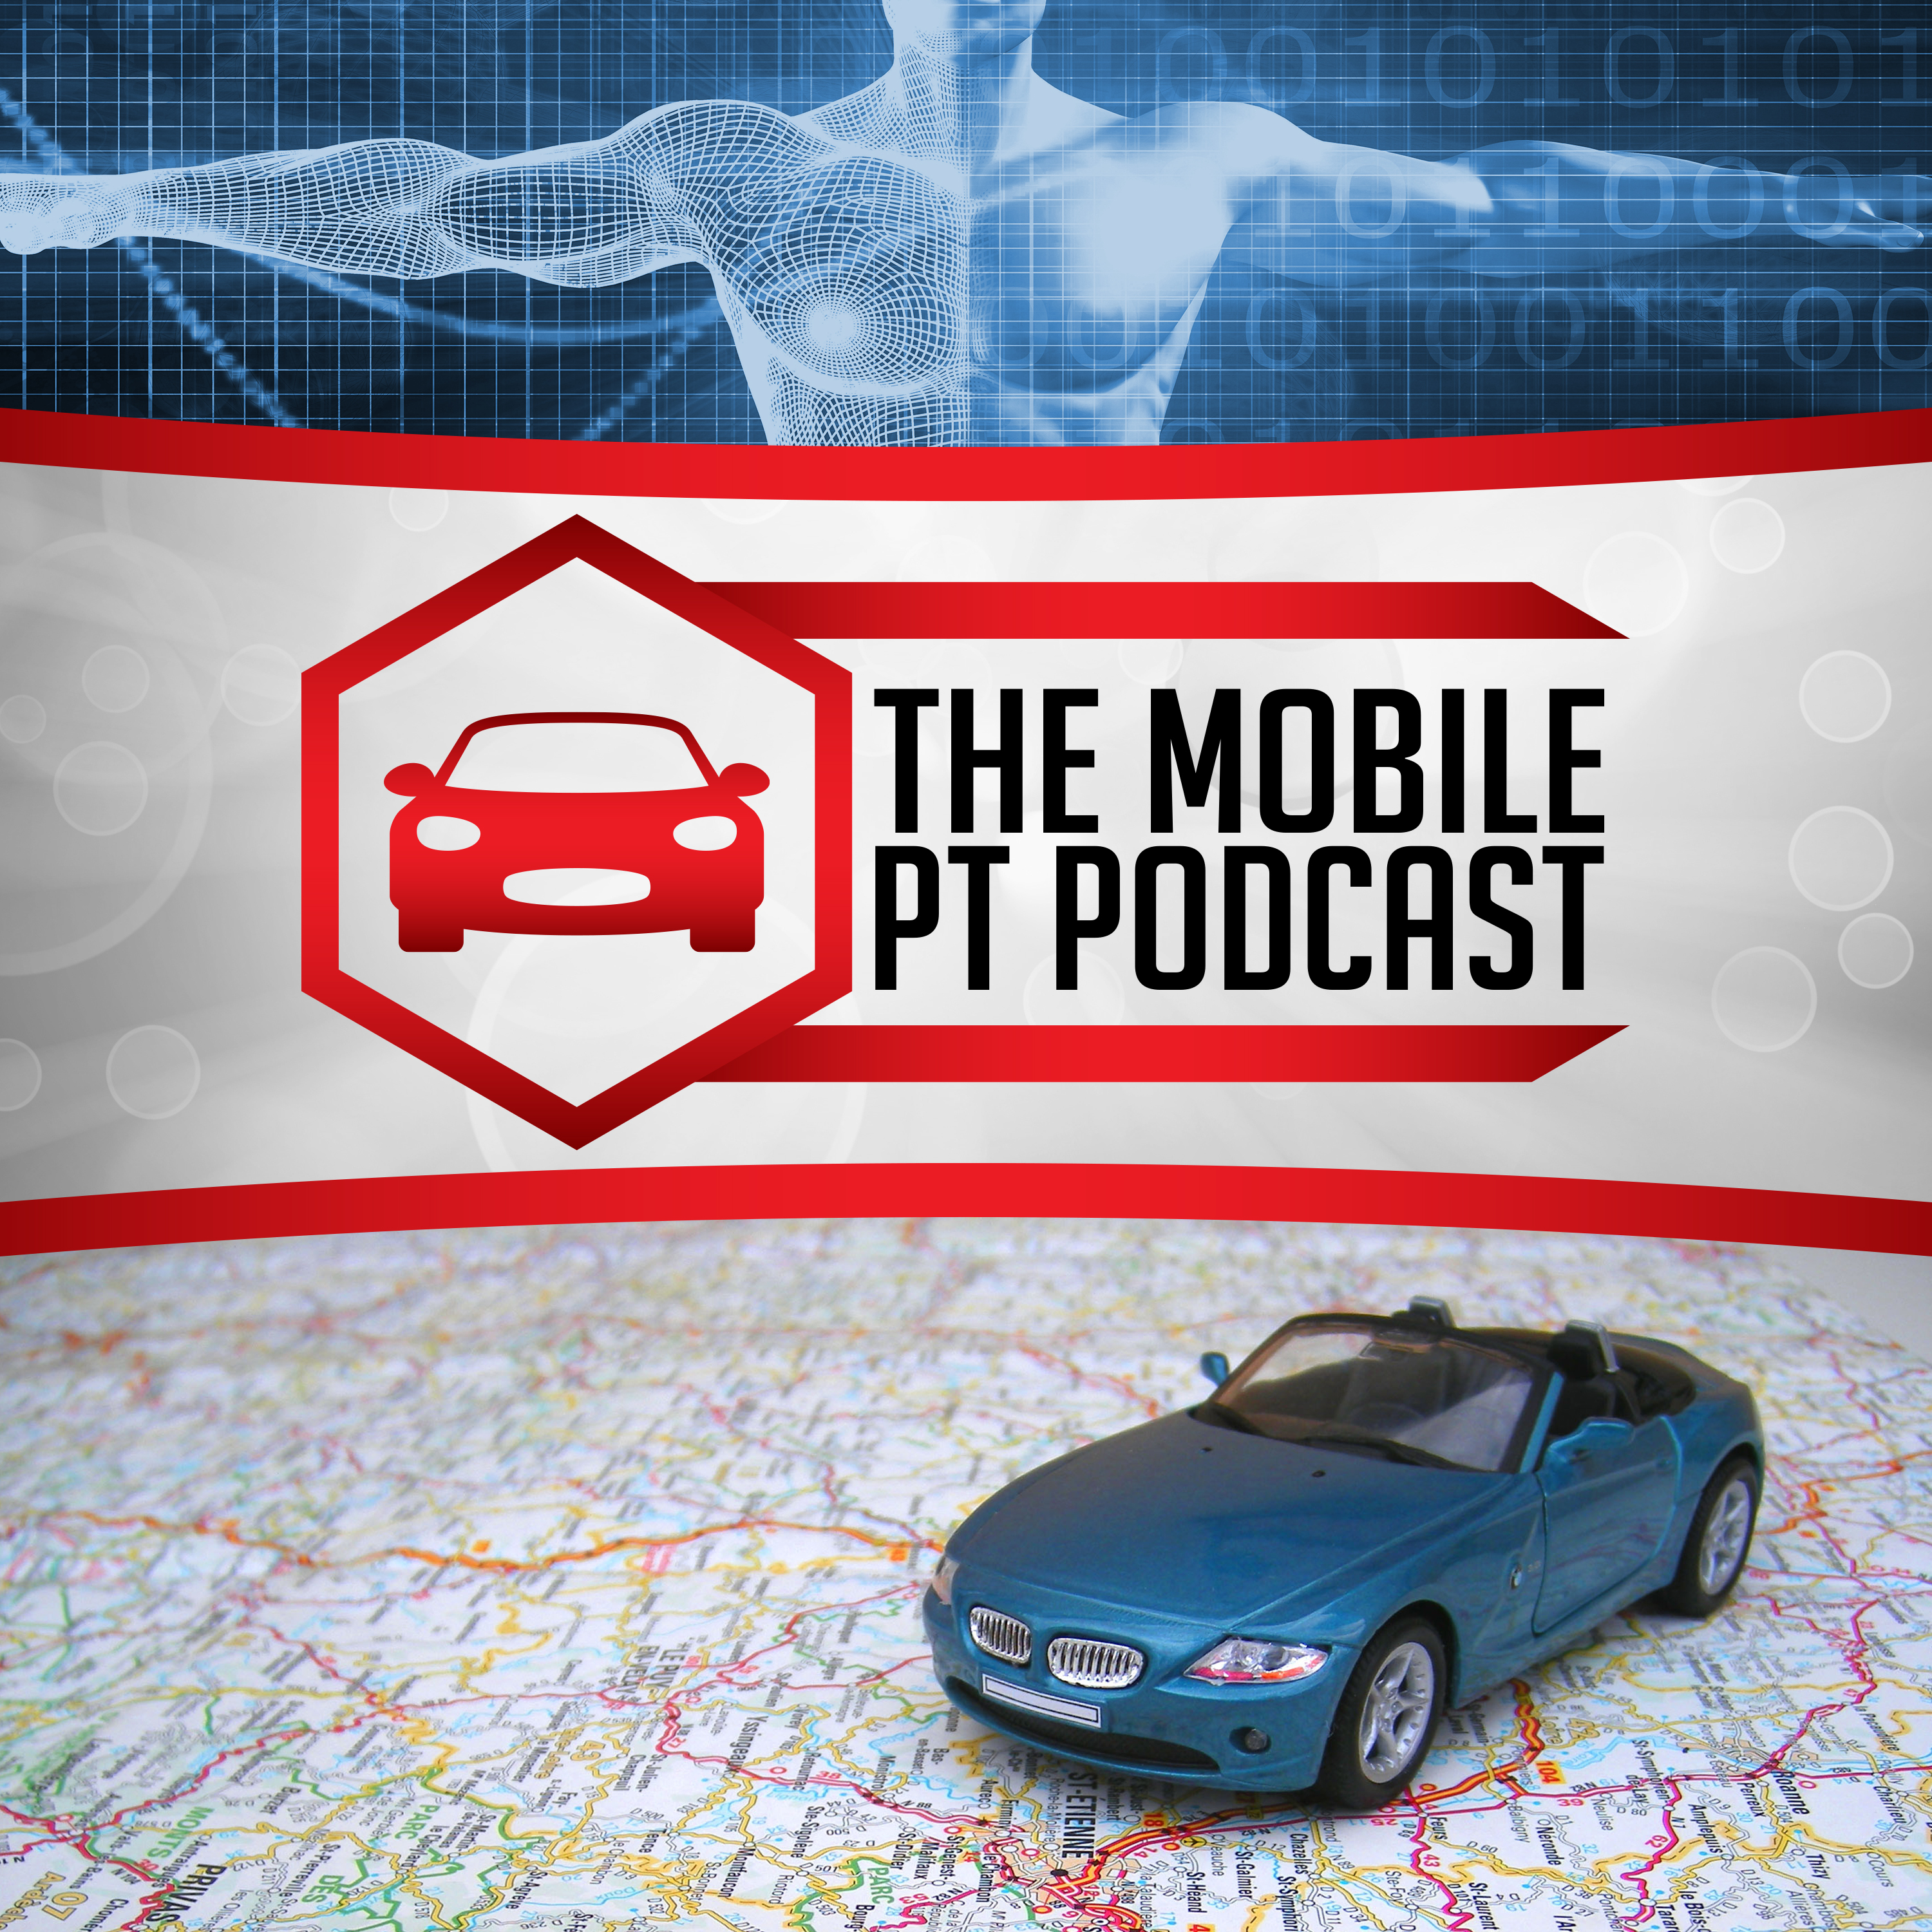 The Mobile PT Podcast show art